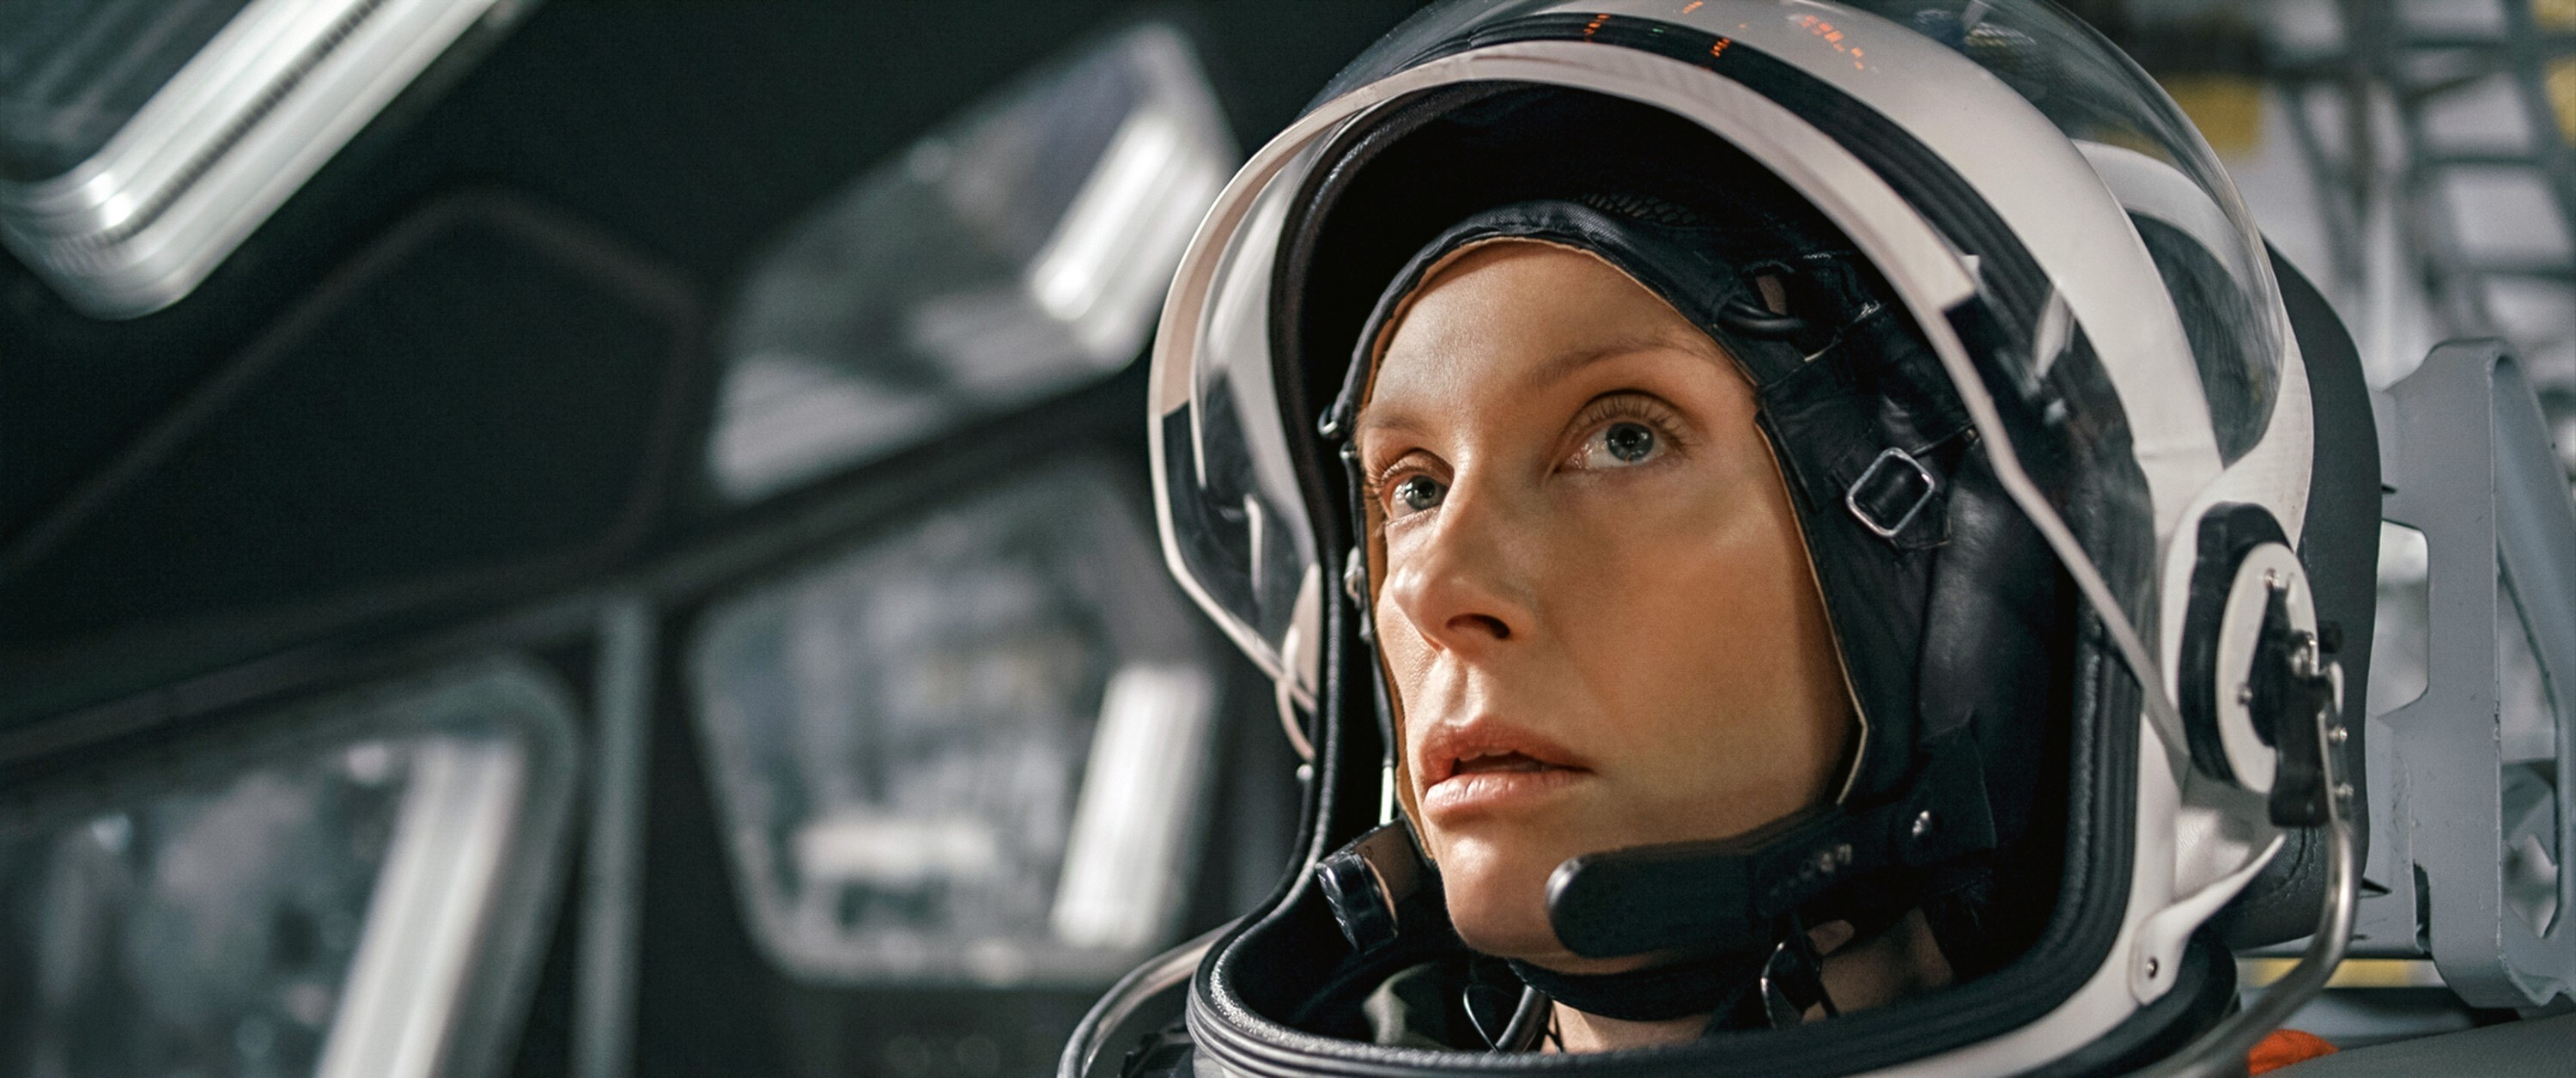 Toni Collette in a spacesuit on board the spaceship